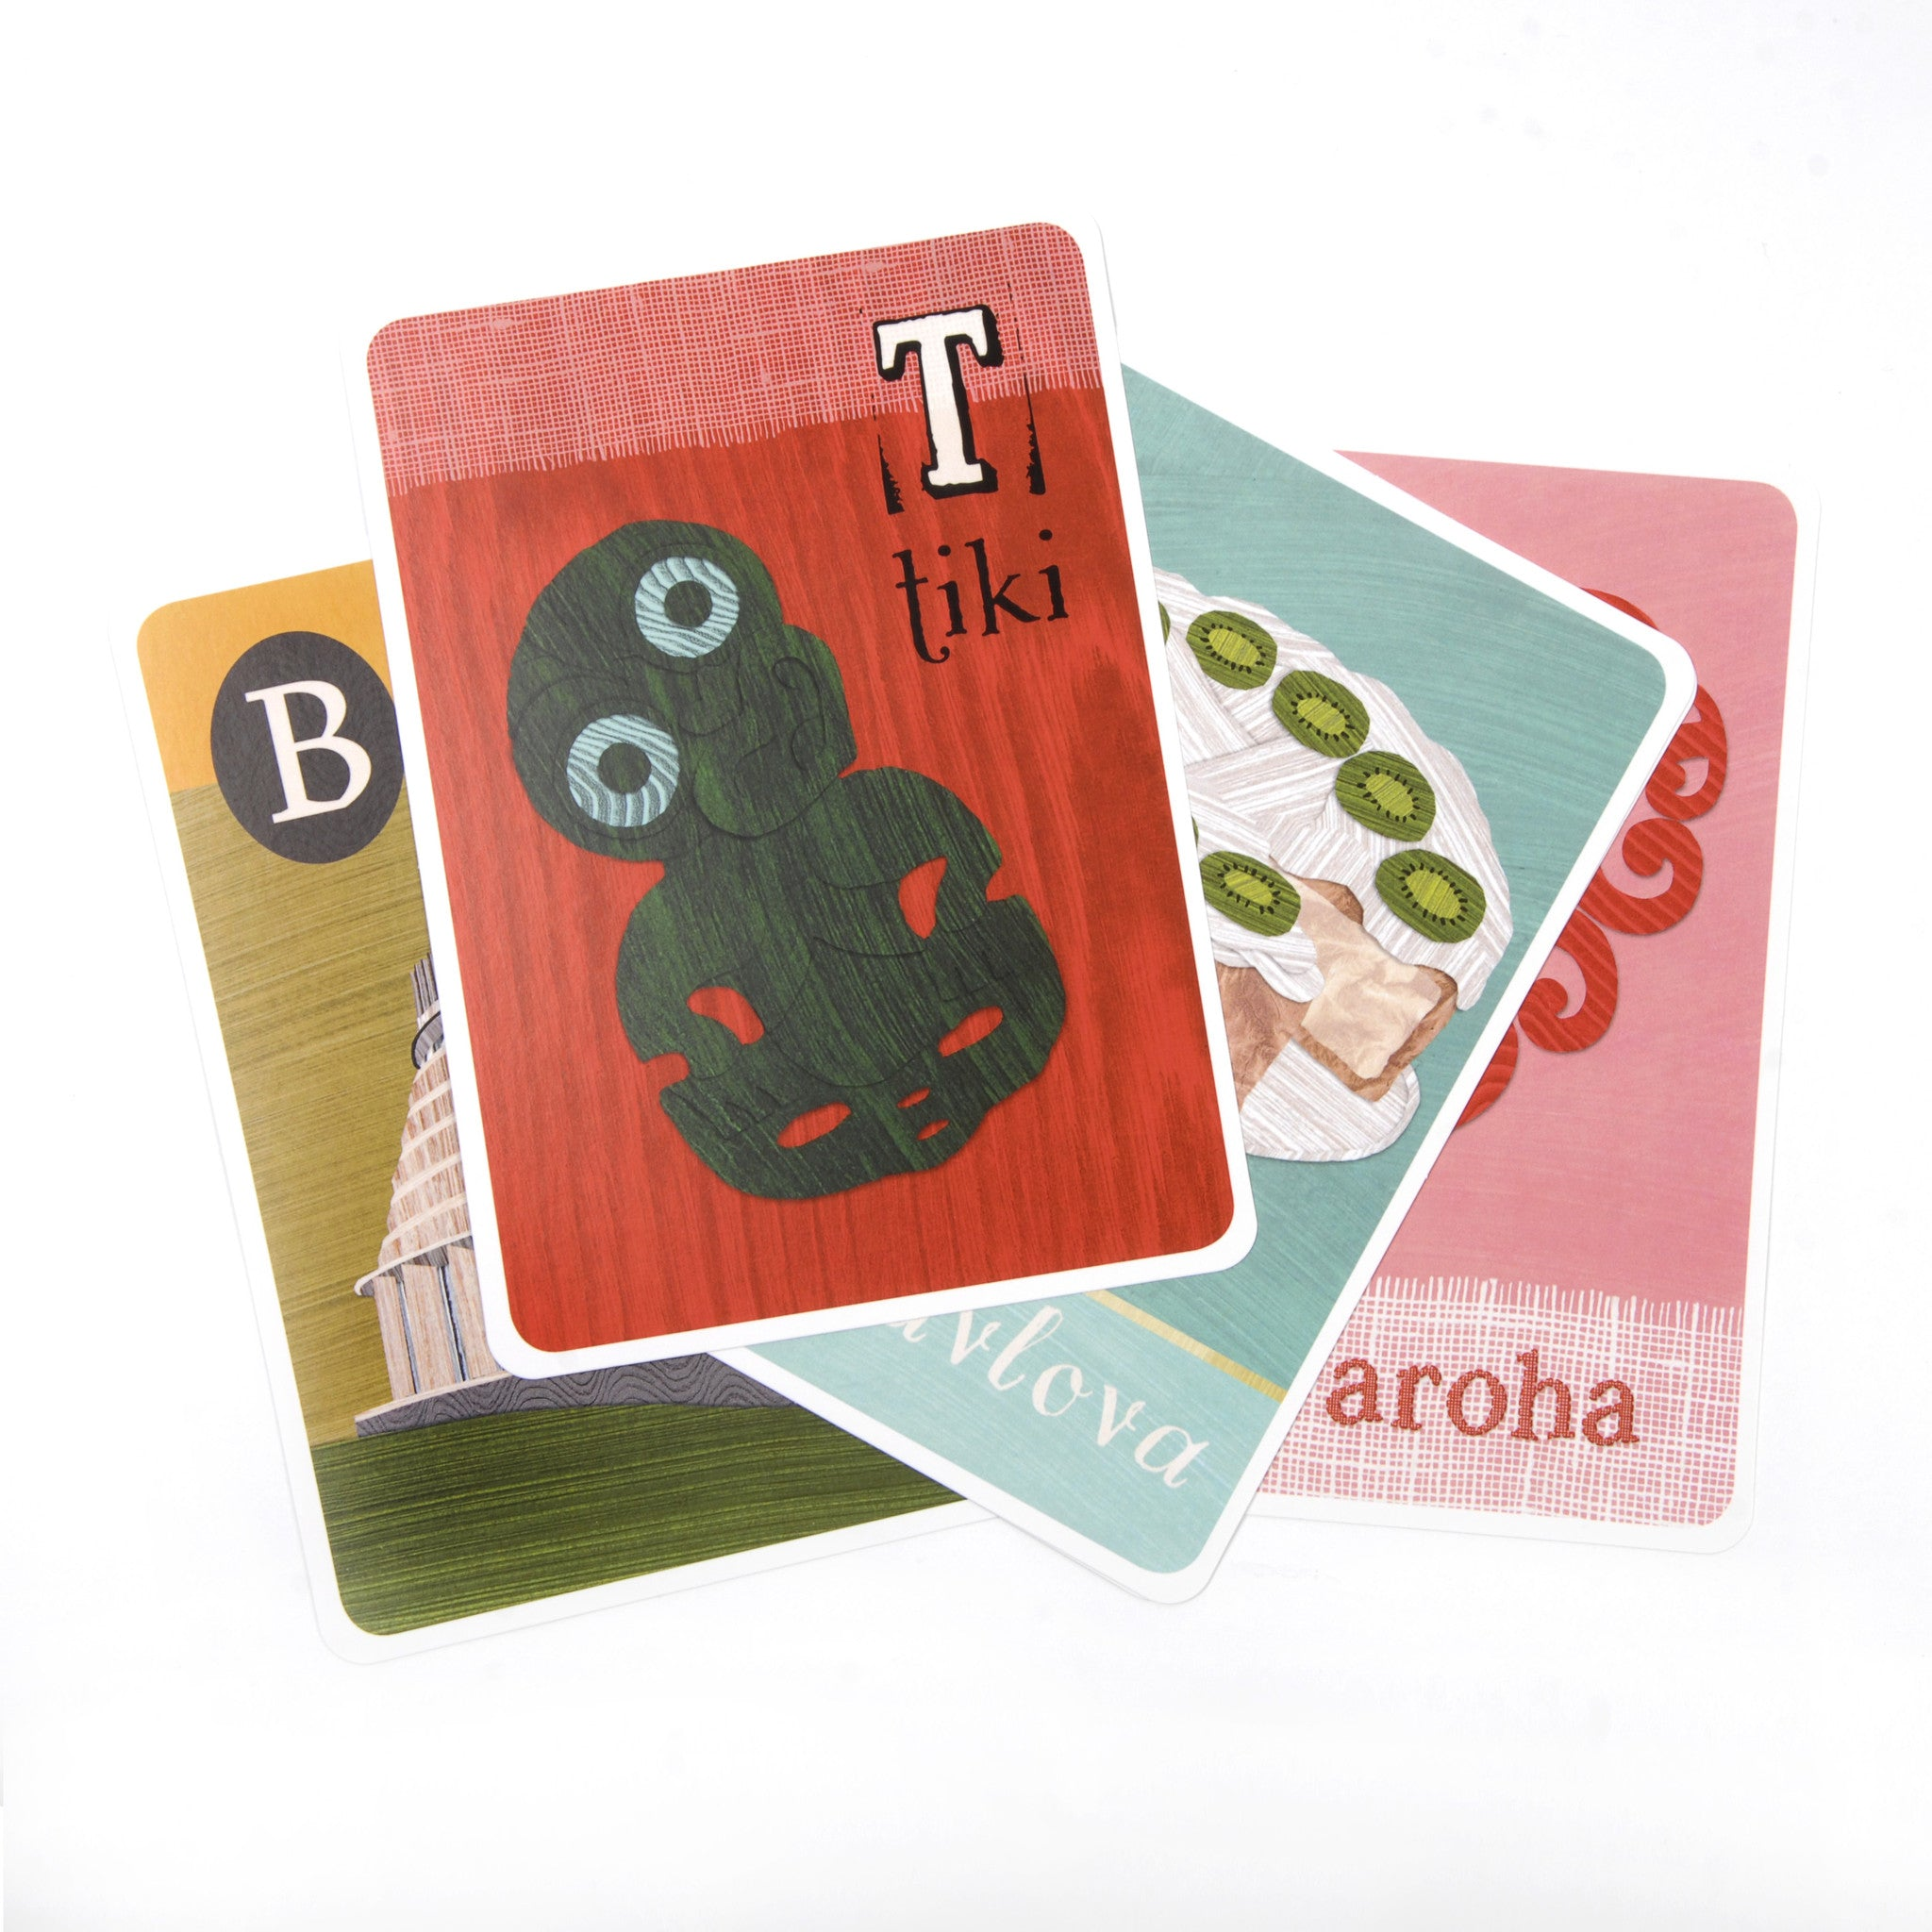 ABC Frieze Cards Image